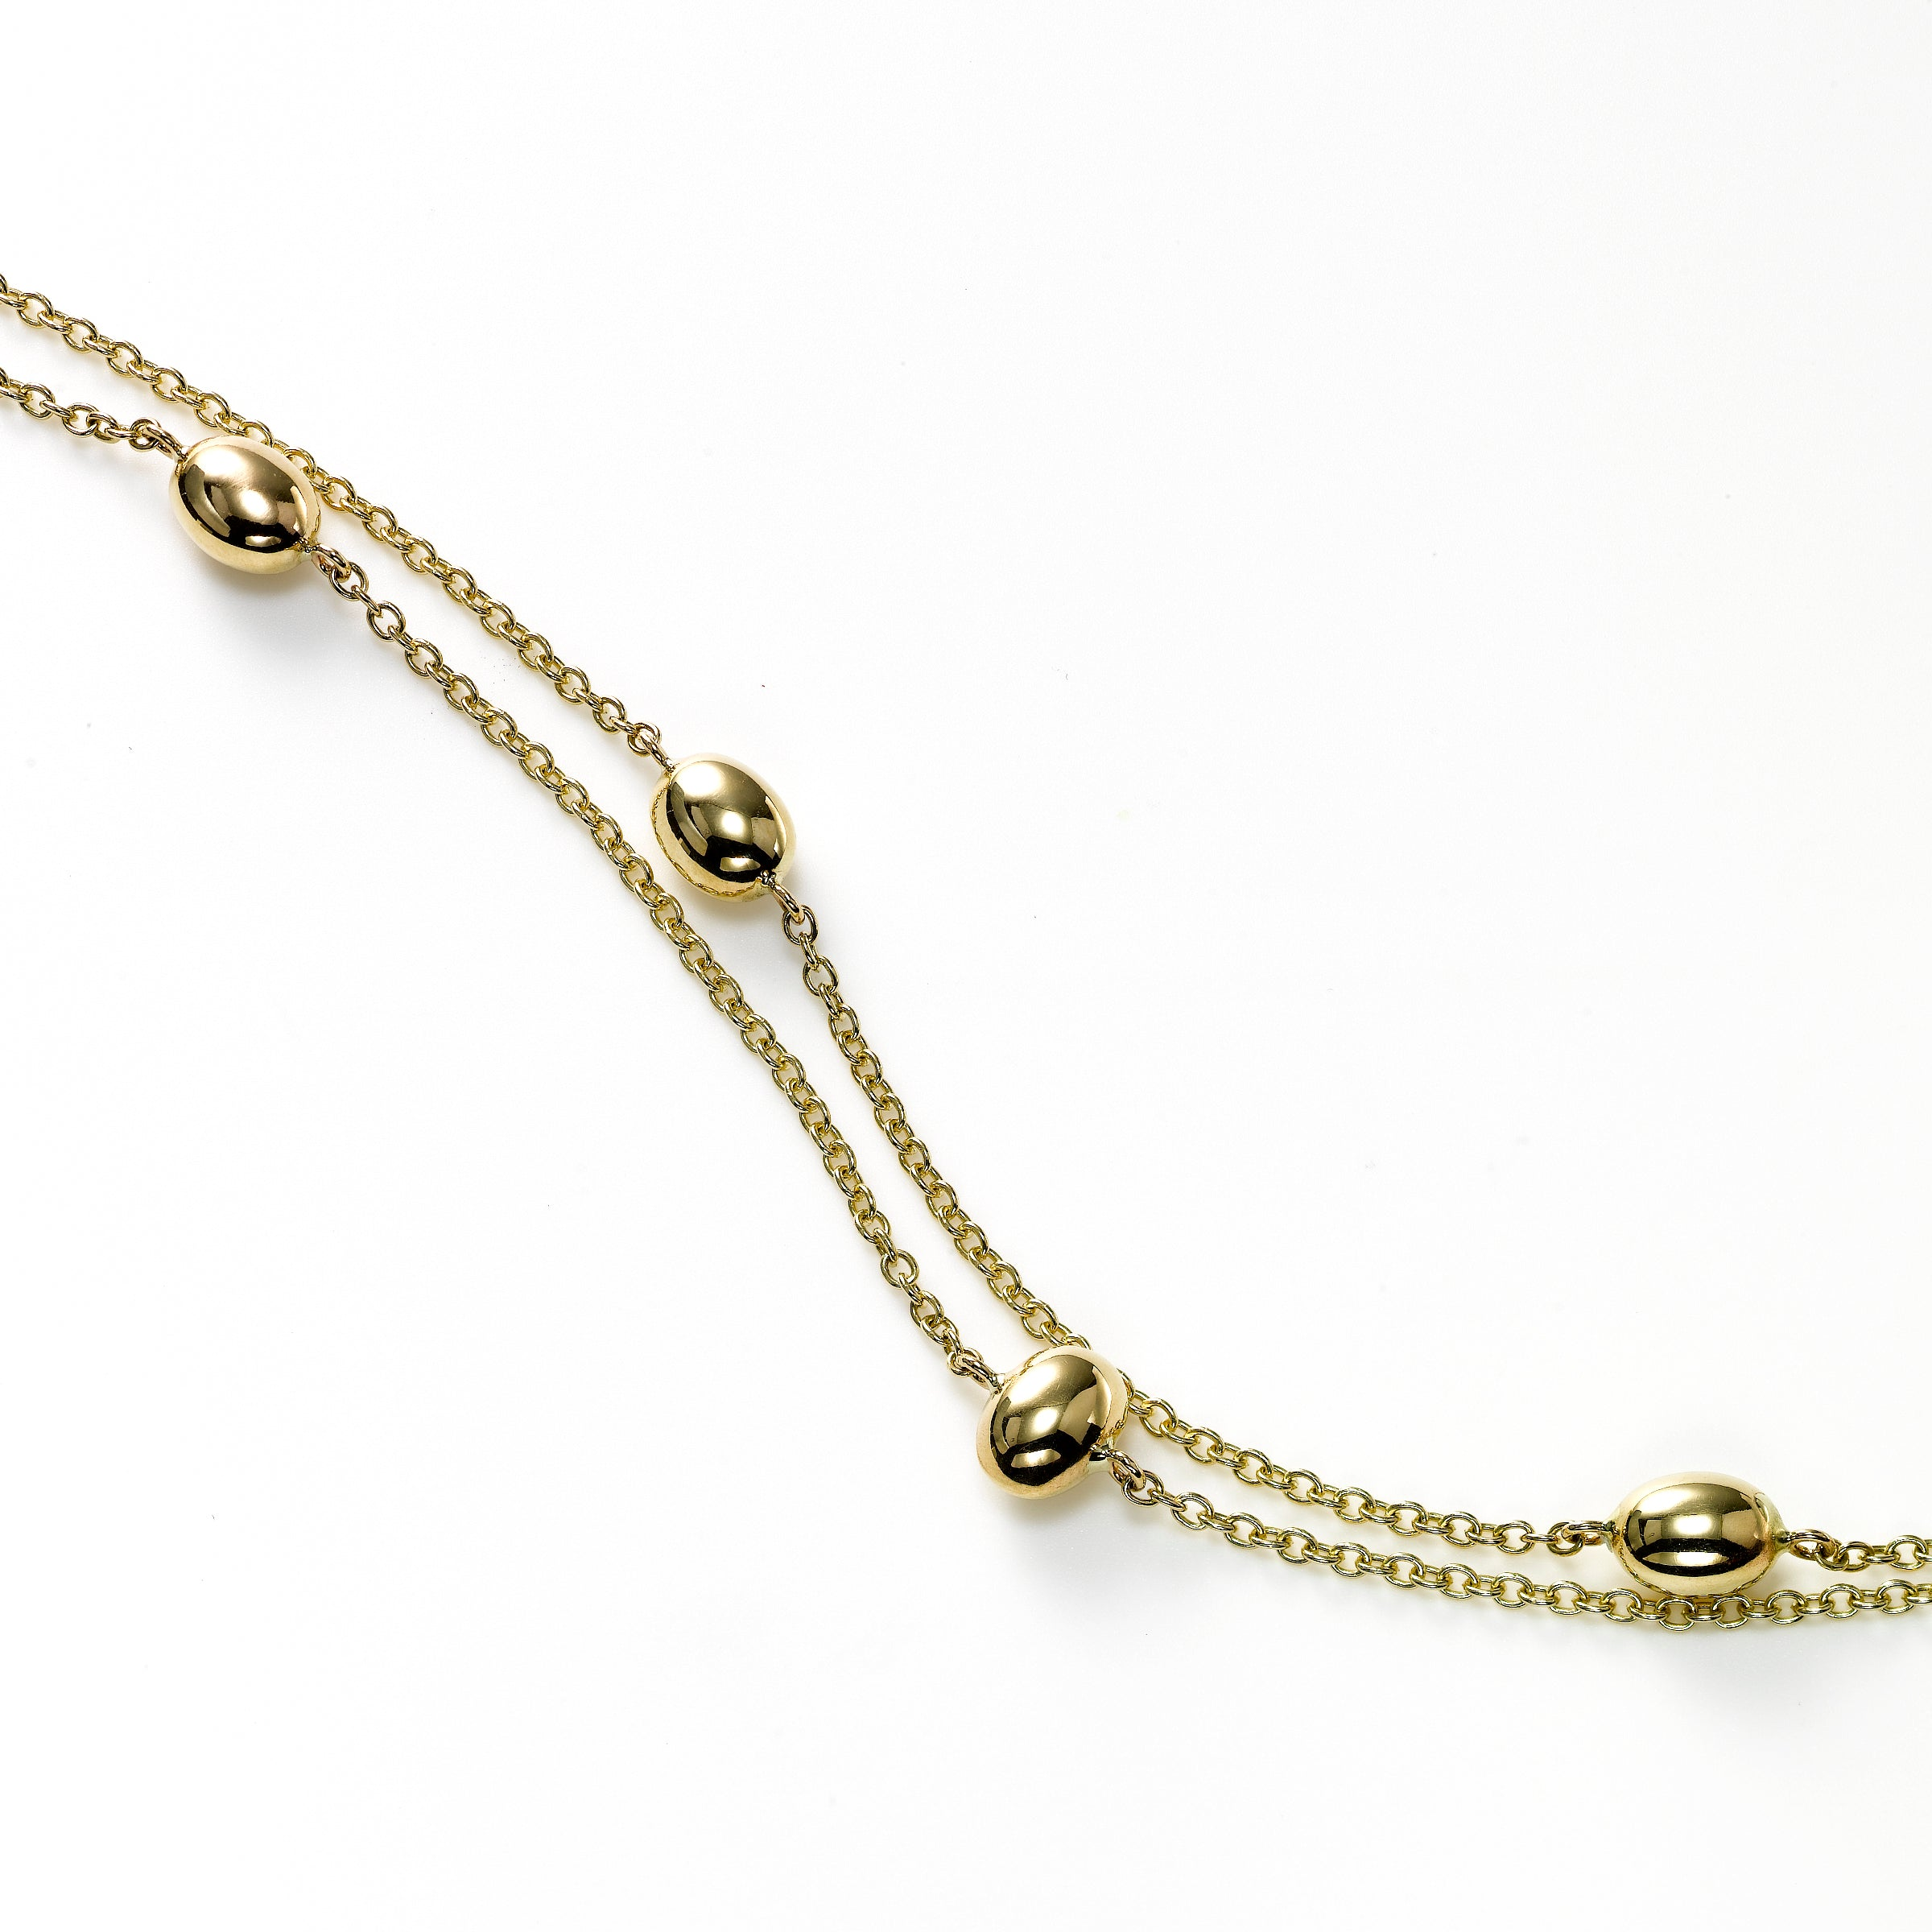 Double Strand Oval Bead Station Bracelet, 14K Yellow Gold